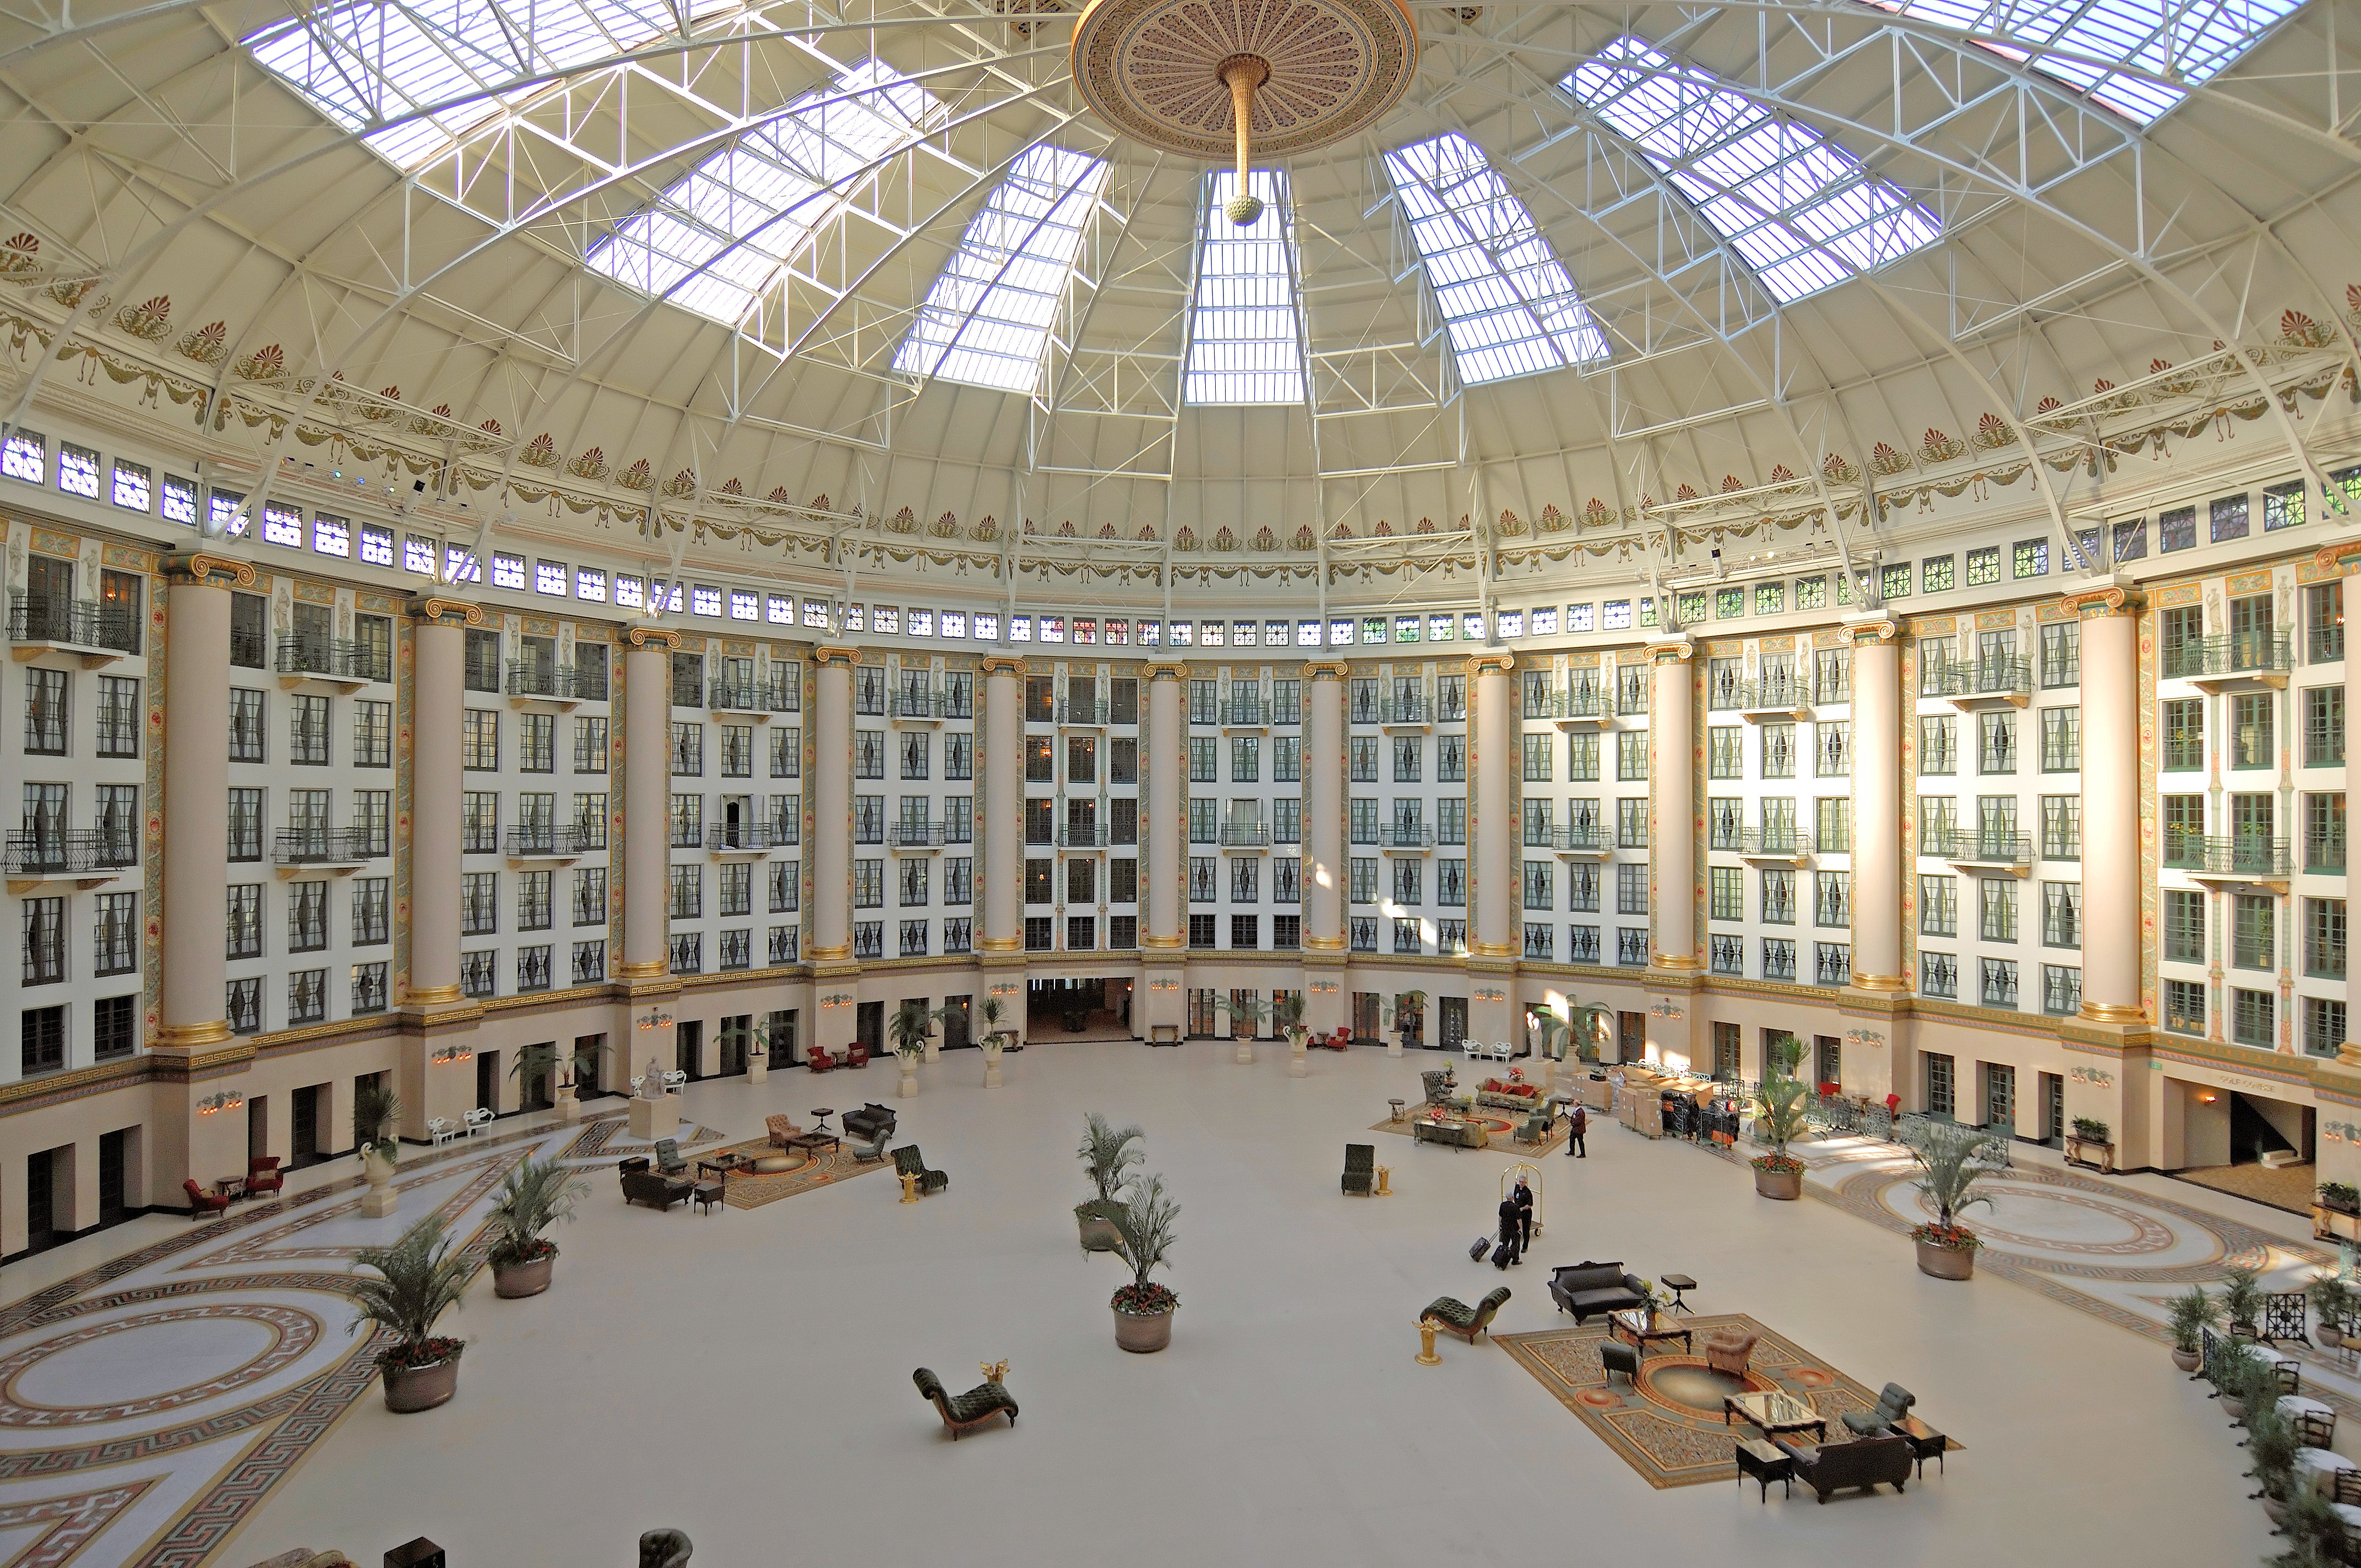 Atrium at West Baden Springs Hotel